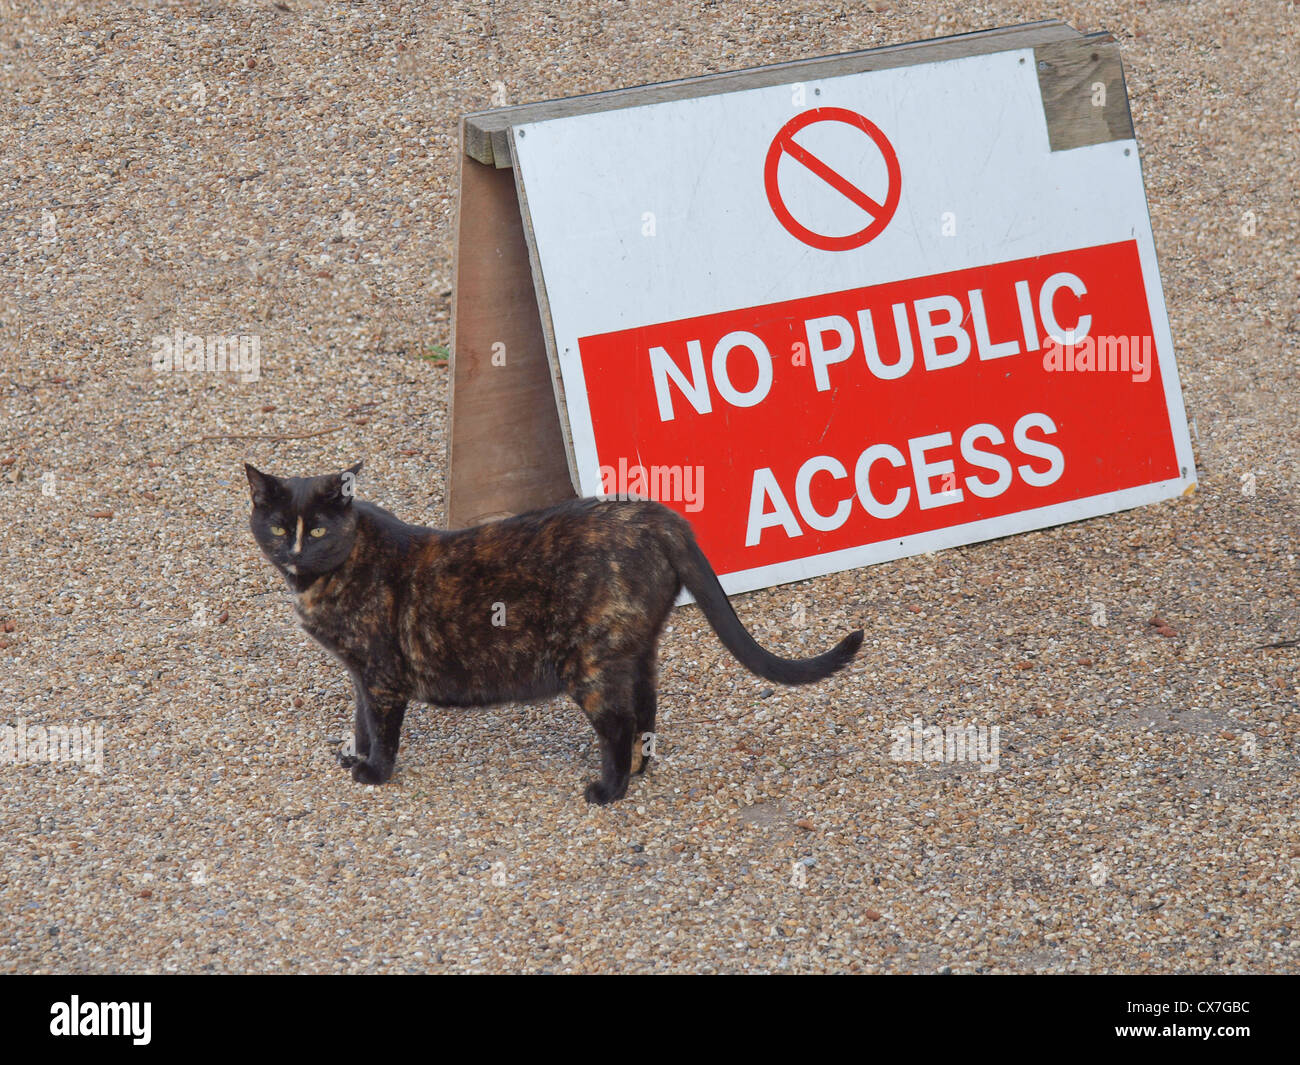 Cat and no public access sign - Stock Image